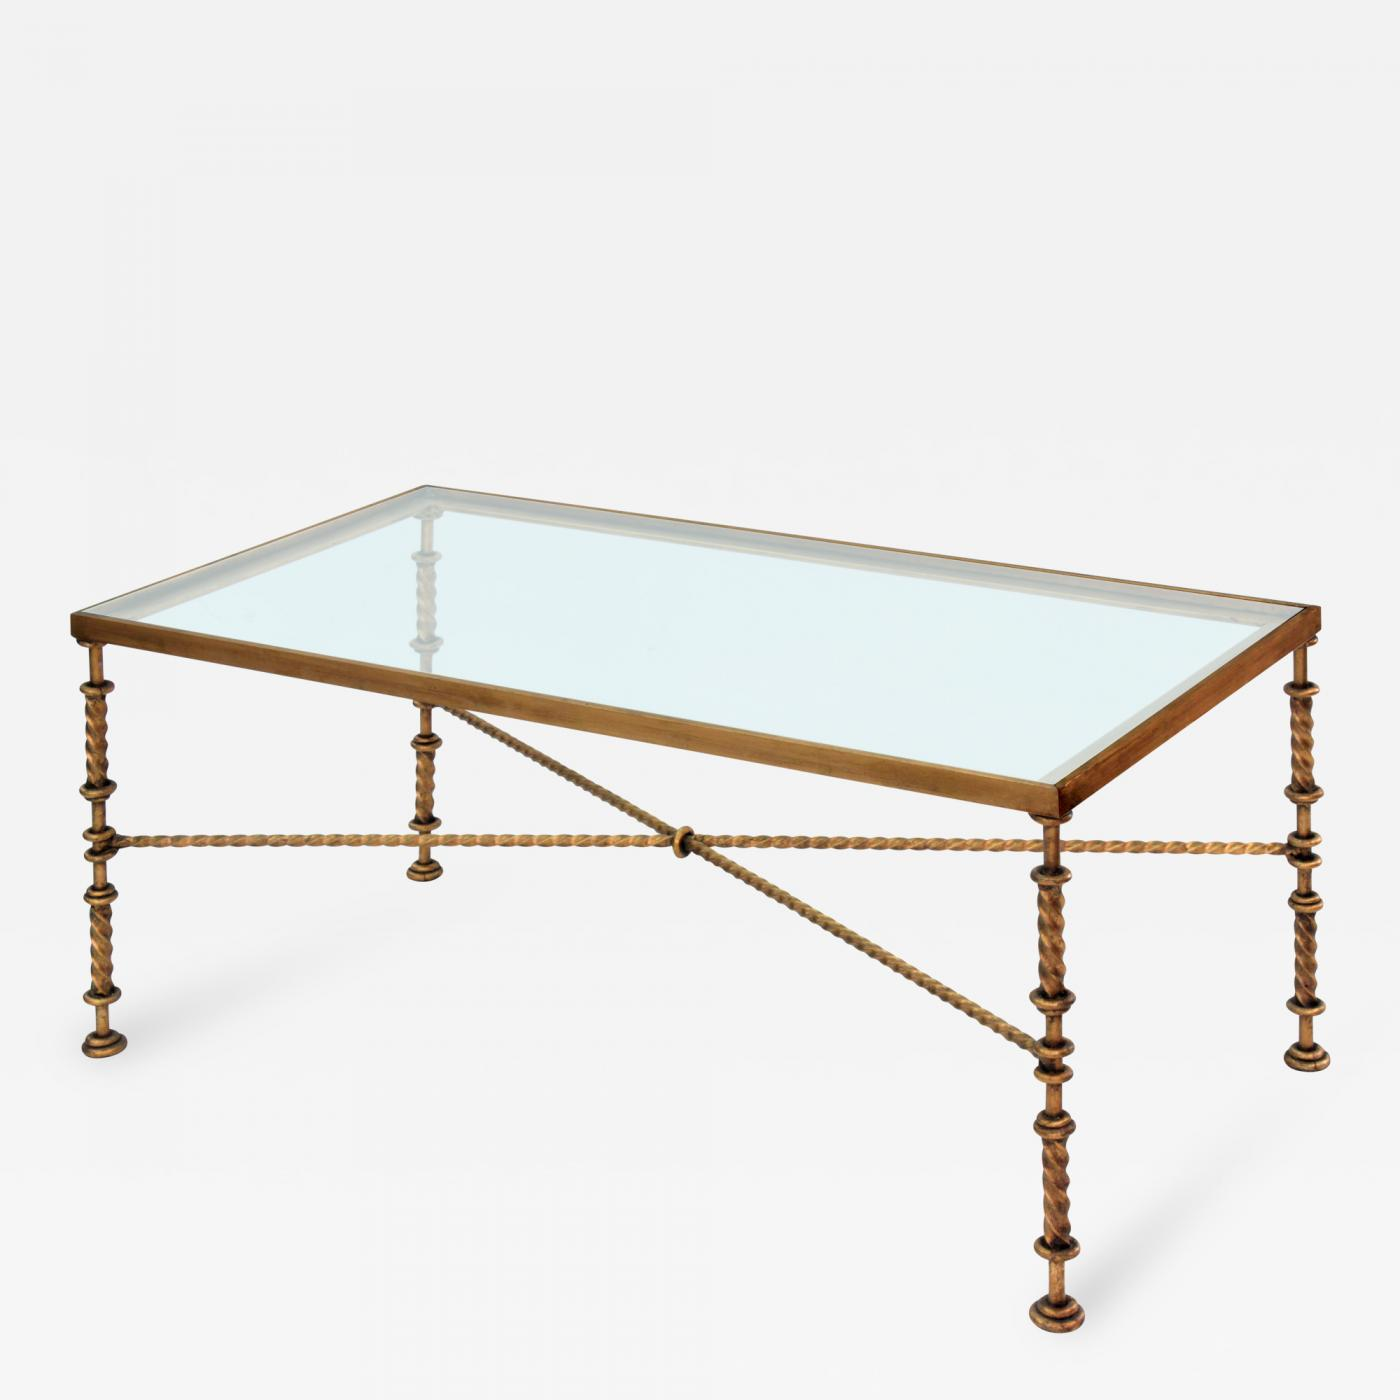 Bronze coffee table with glass top elegant bronze coffee table with glass top geotapseo Image collections